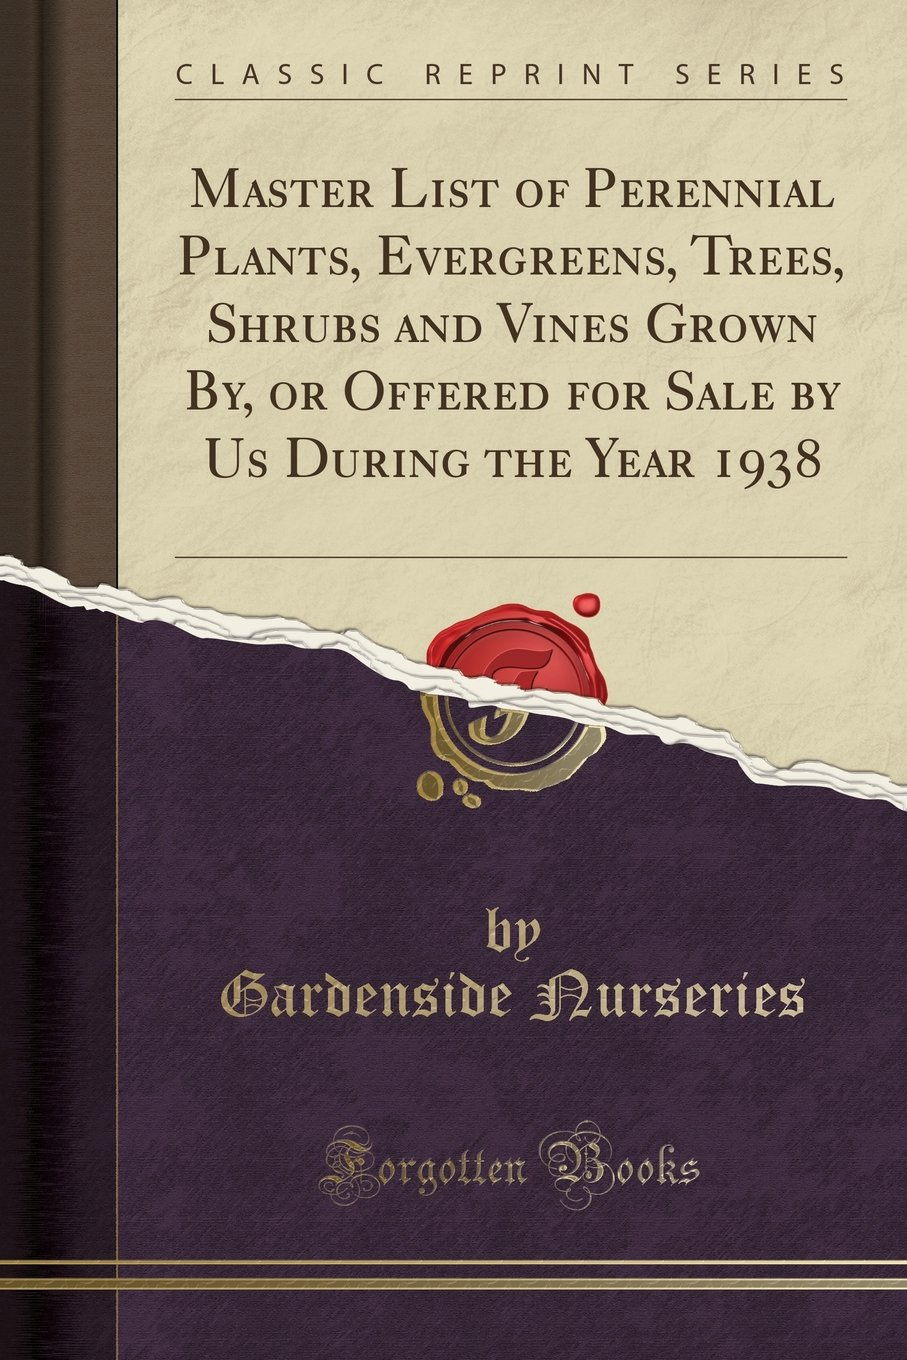 Master List of Perennial Plants, Evergreens, Trees, Shrubs and Vines Grown By, or Offered for Sale by Us During the Year 1938 (Classic Reprint) pdf epub